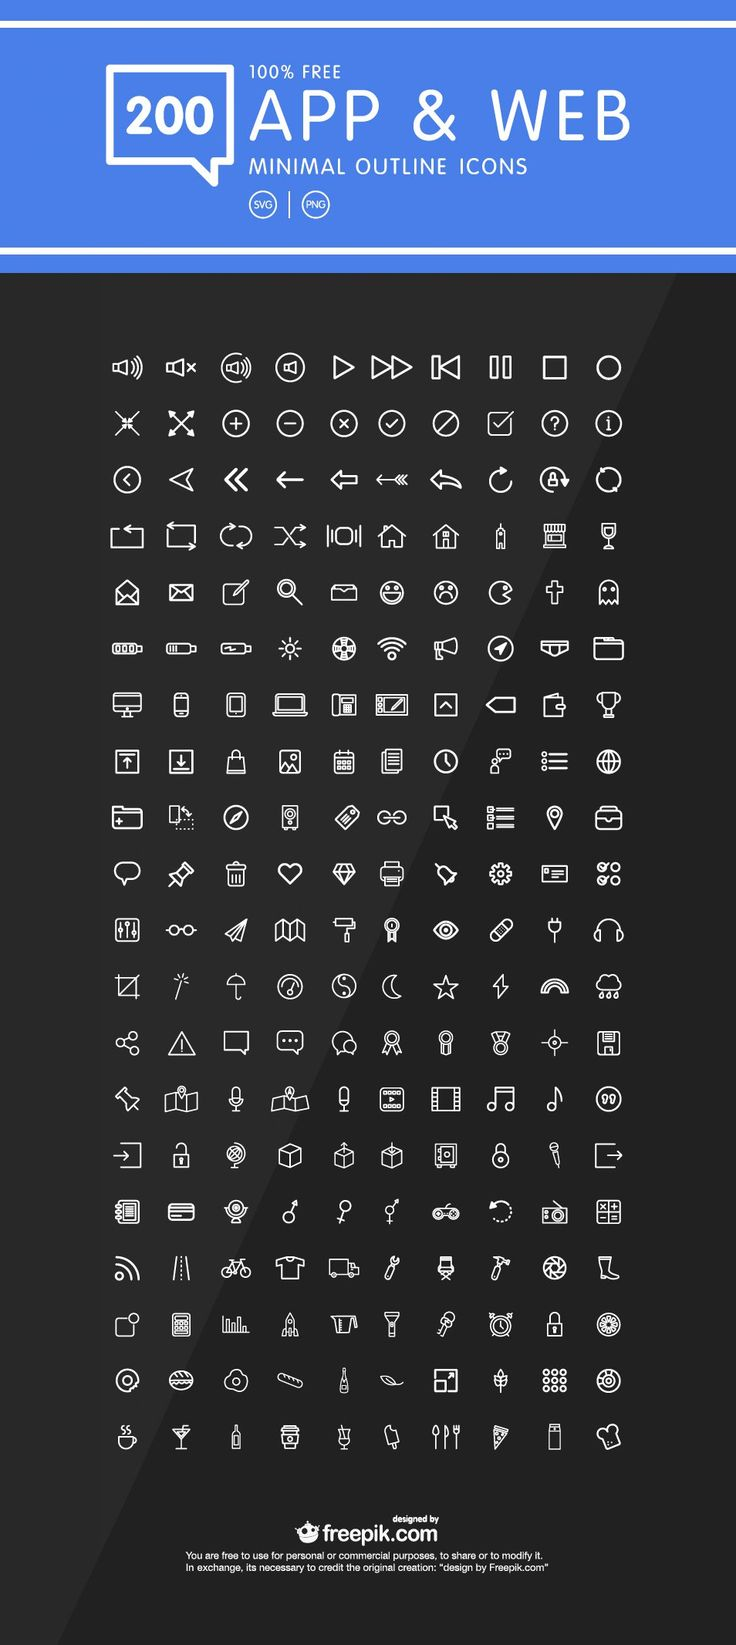 A set of 200+ outline icons for web and mobile application design for free of cost . Icons included in this set is most common icons used for app designs.